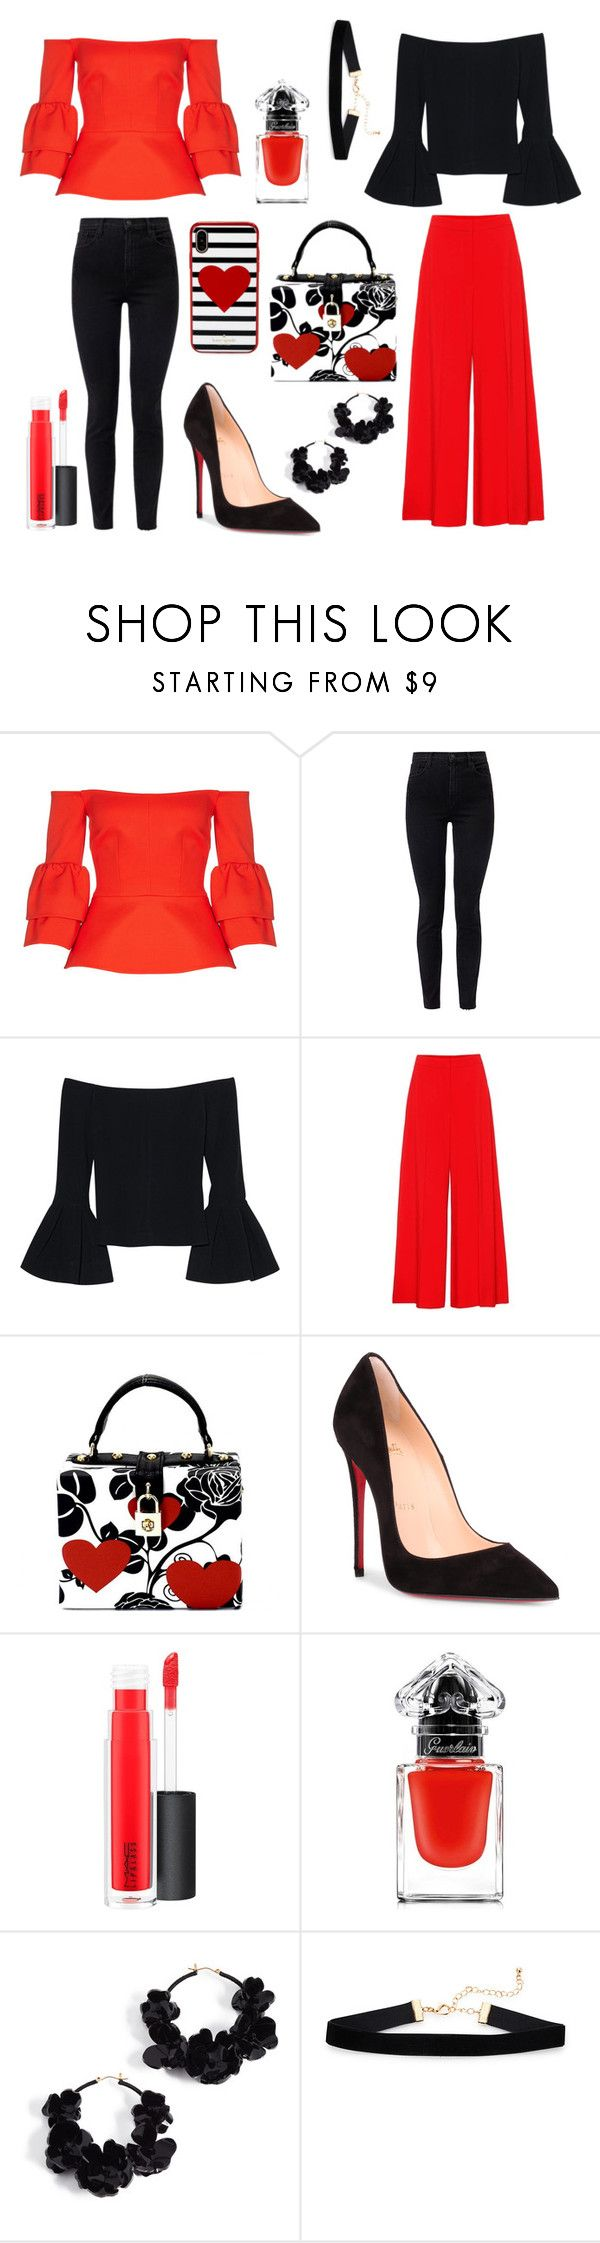 """Outfit for two days"" by forgetrules ❤ liked on Polyvore featuring Safiyaa, J Brand, Alexis, STELLA McCARTNEY, Christian Louboutin, MAC Cosmetics, Guerlain, Oscar de la Renta and Kate Spade"